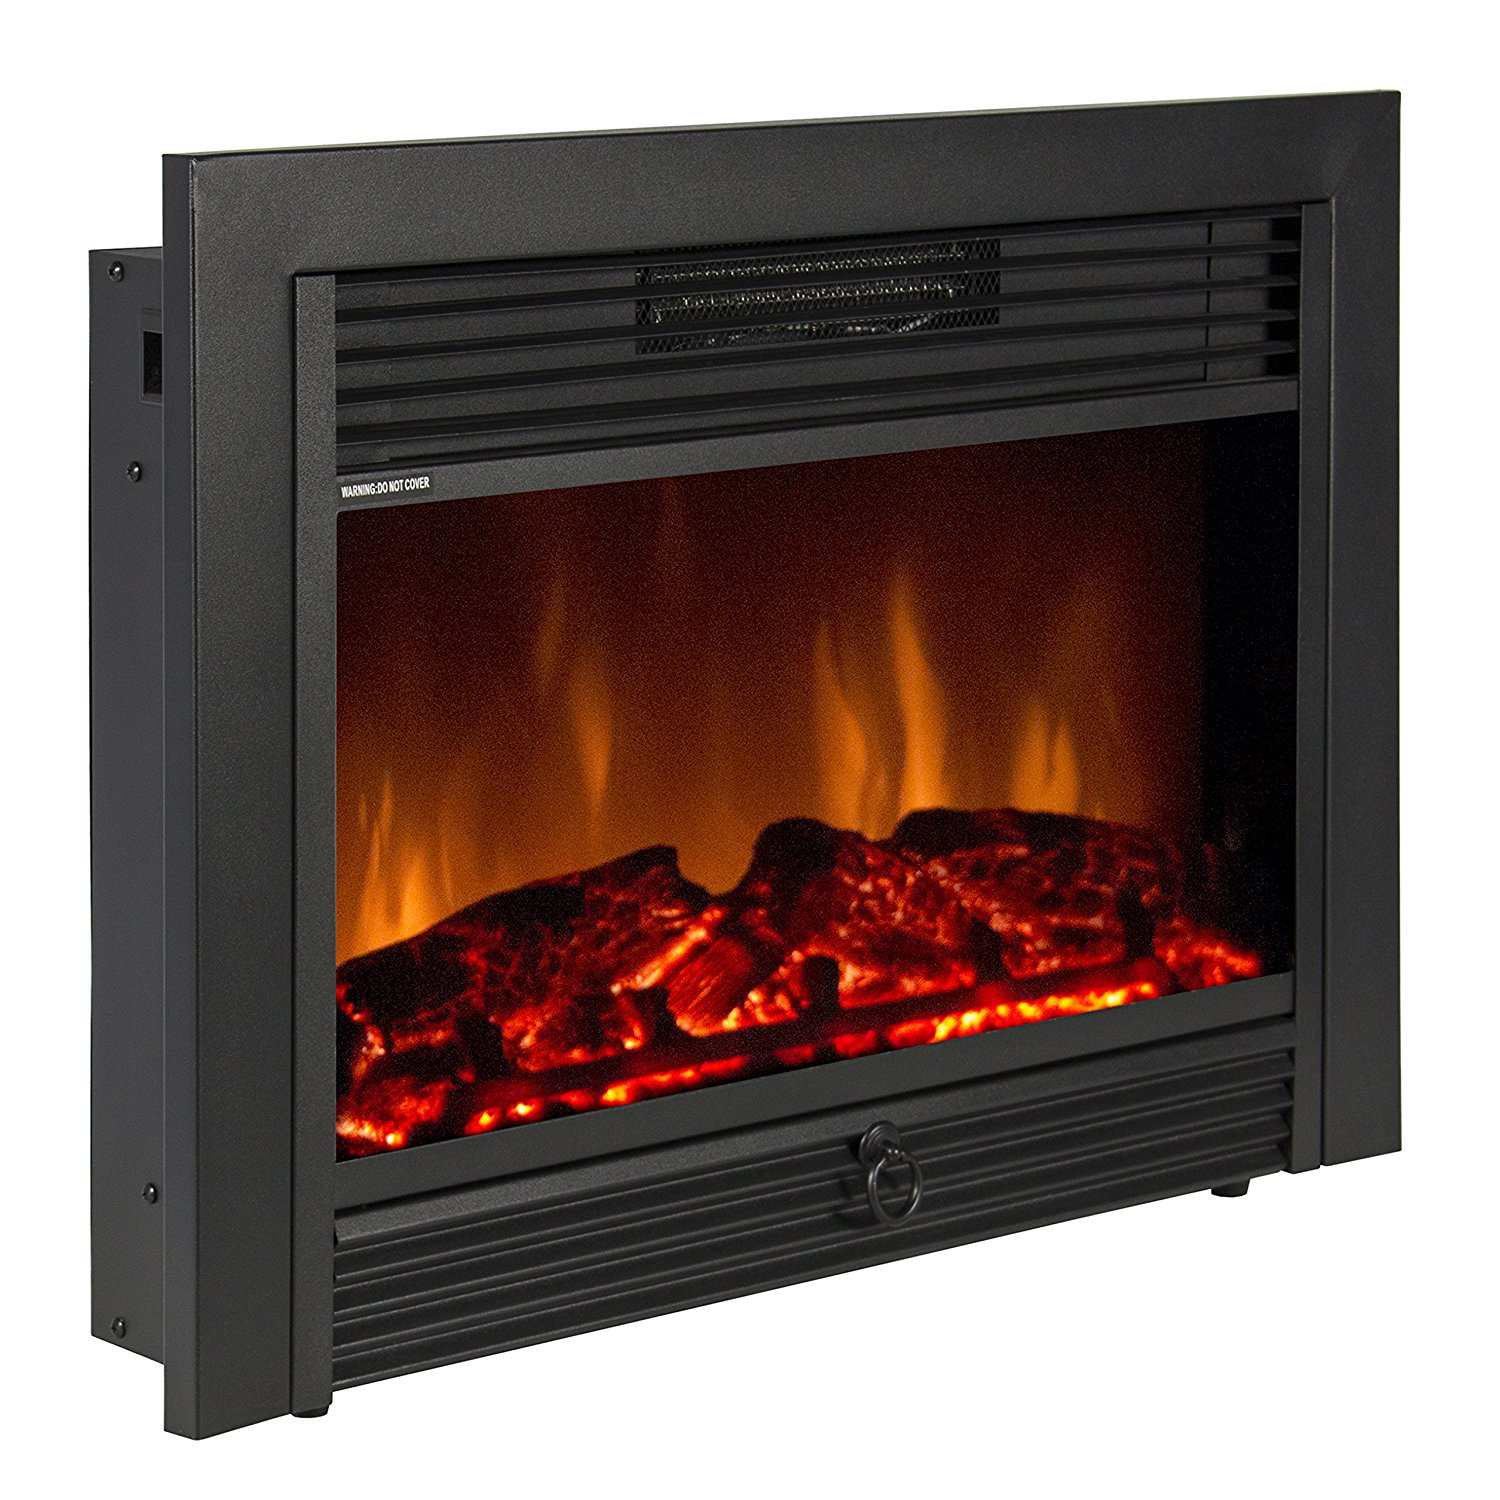 Best Electric Fireplace  Stoves For 2018 Reviews With Comparison